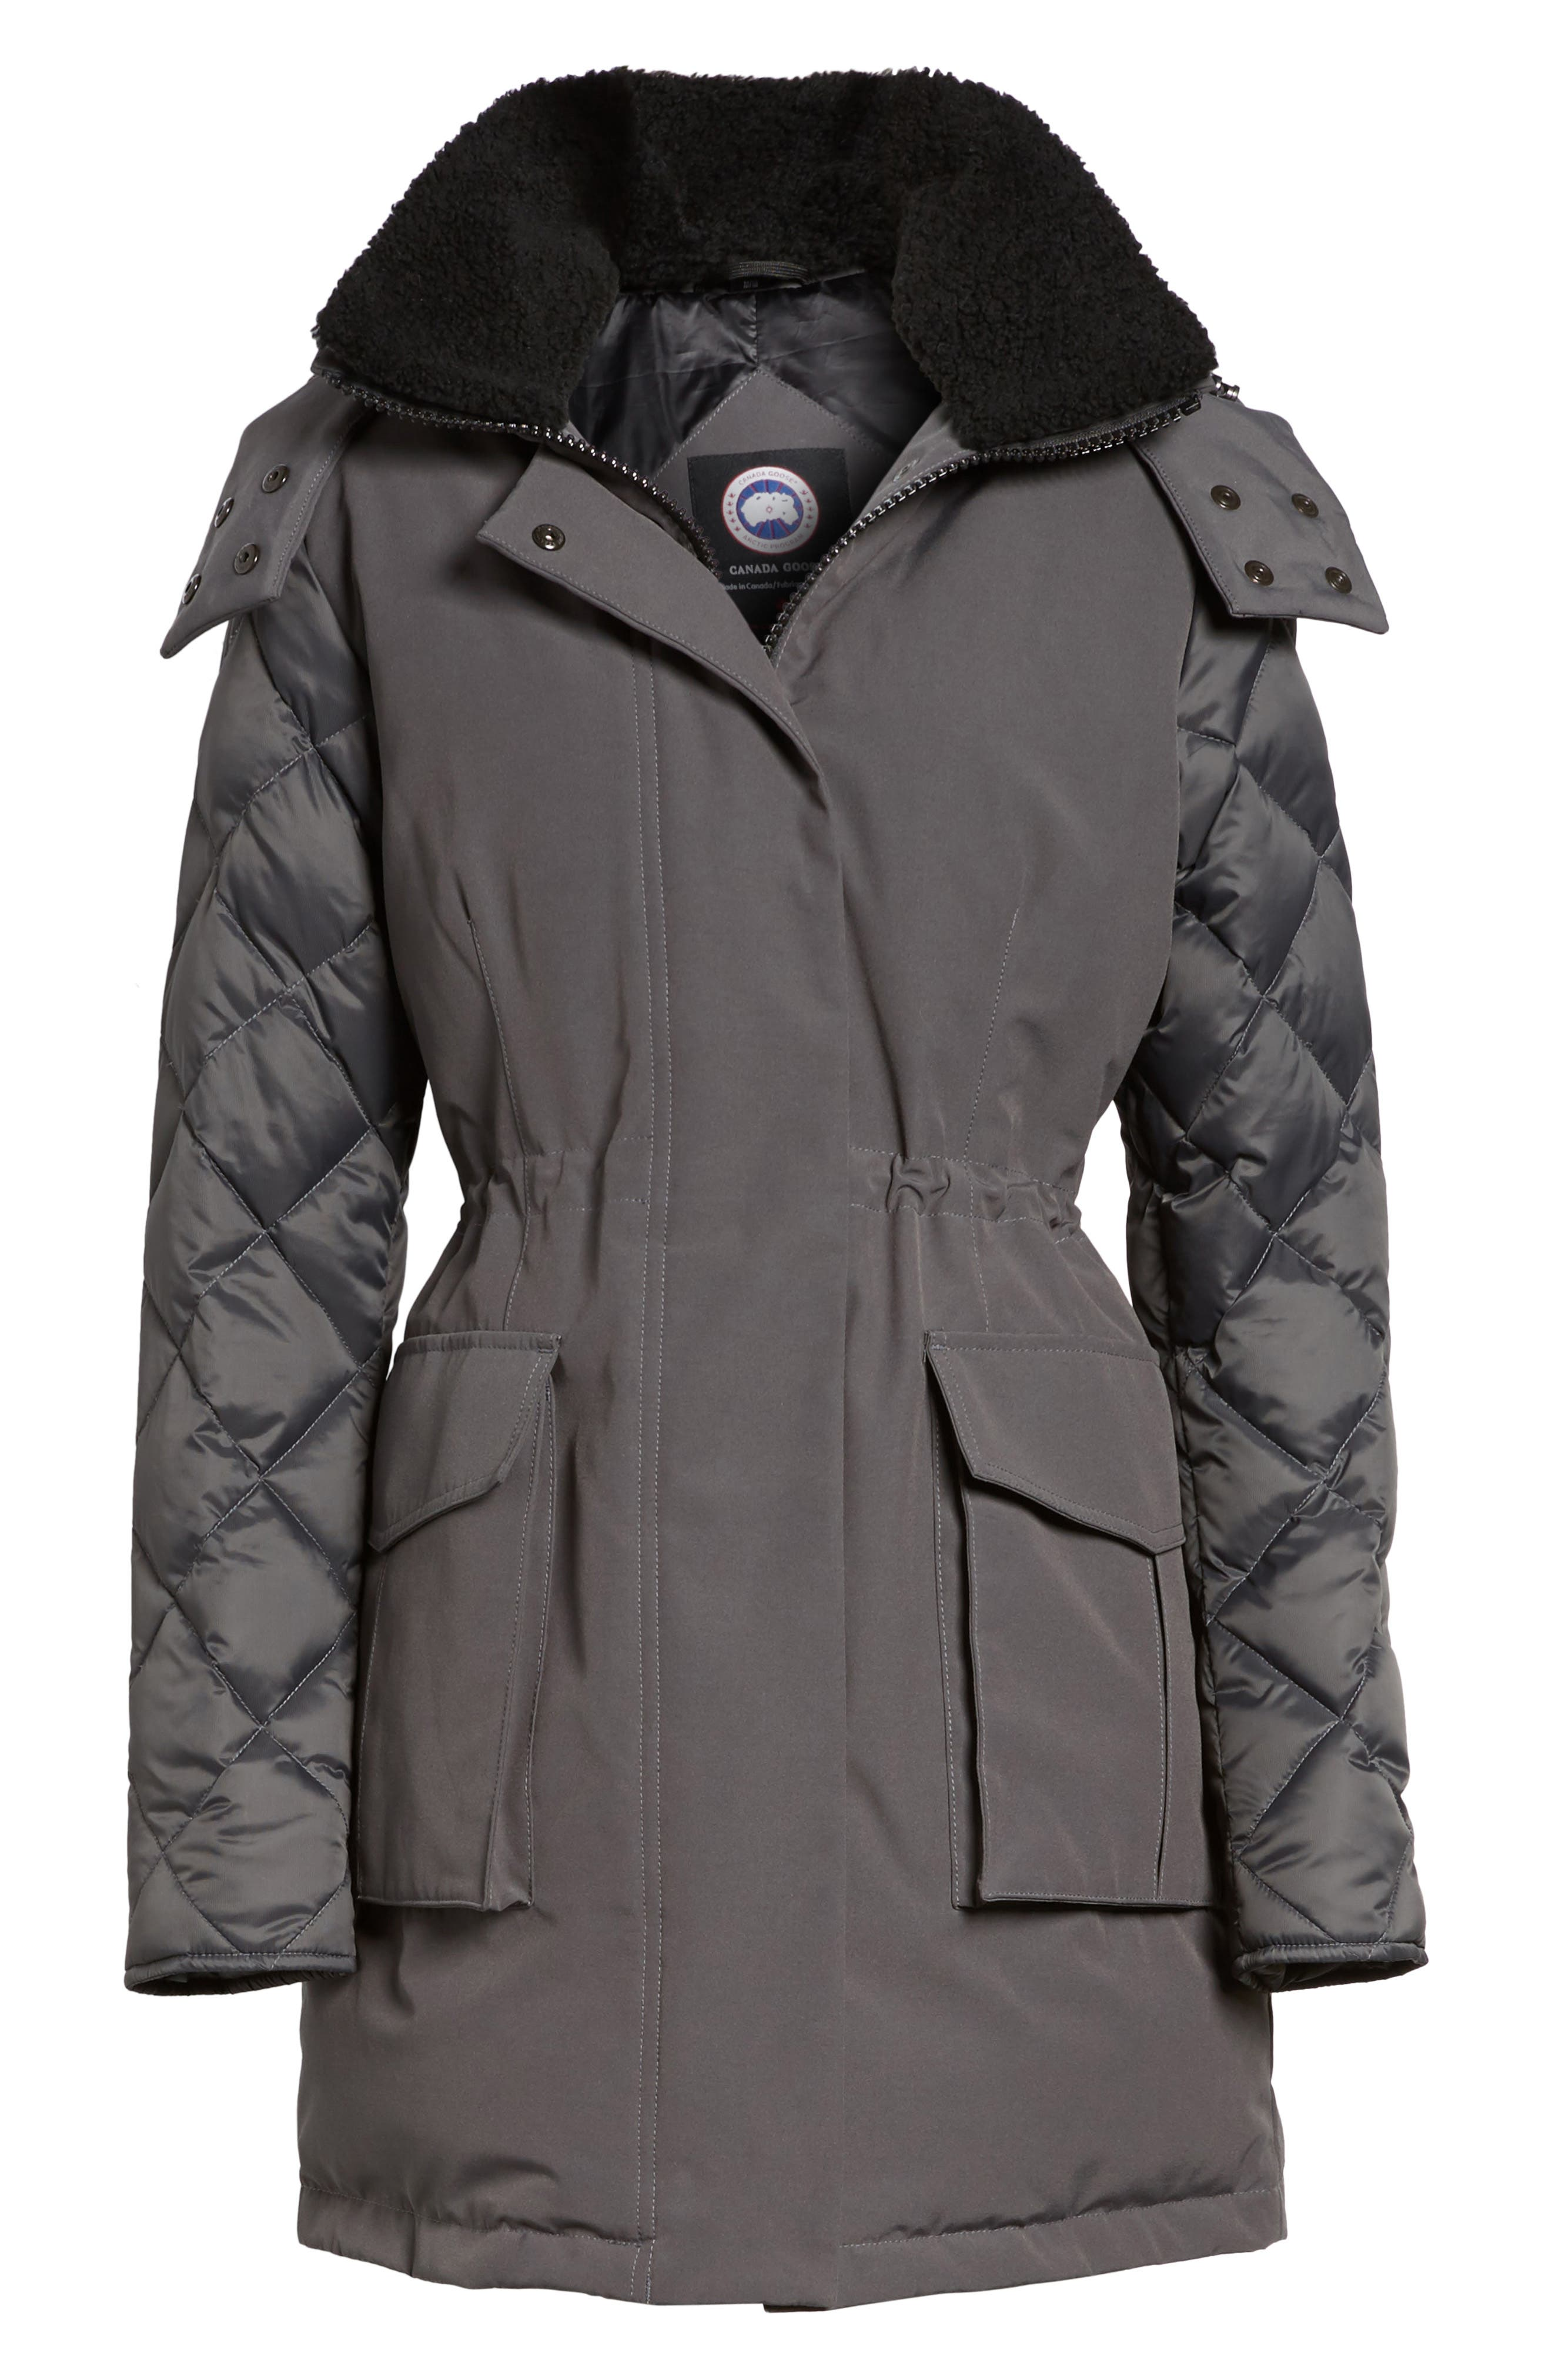 CANADA GOOSE, Elwin Power Fill Down Jacket, Alternate thumbnail 6, color, GRAPHITE